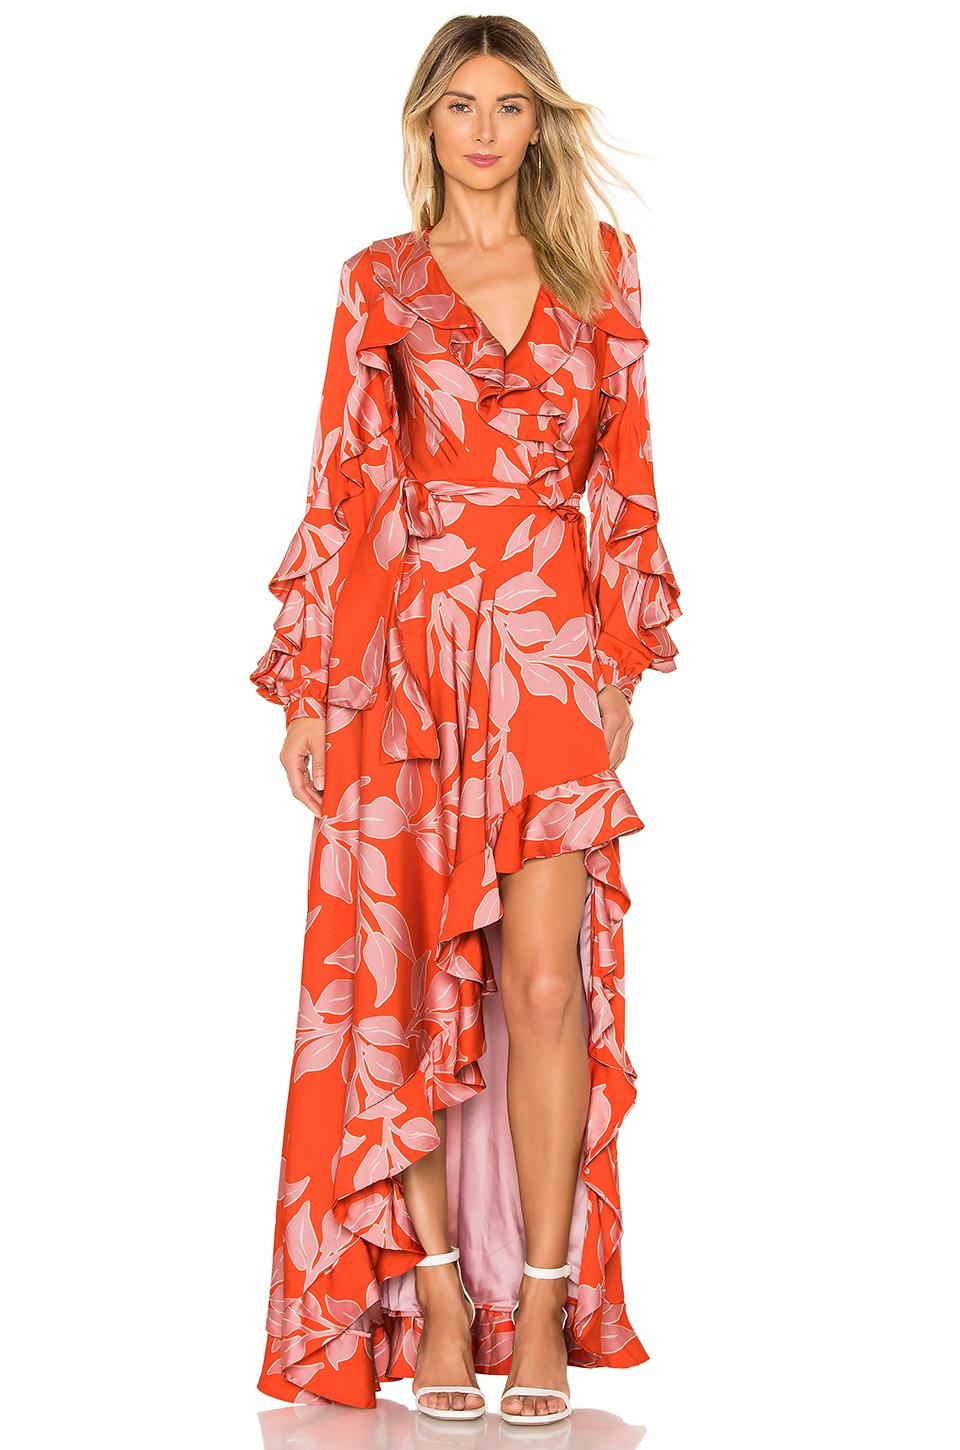 PatBo Leaf Print Ruffle Sleeve Maxi Dress in Hot Pink Floral